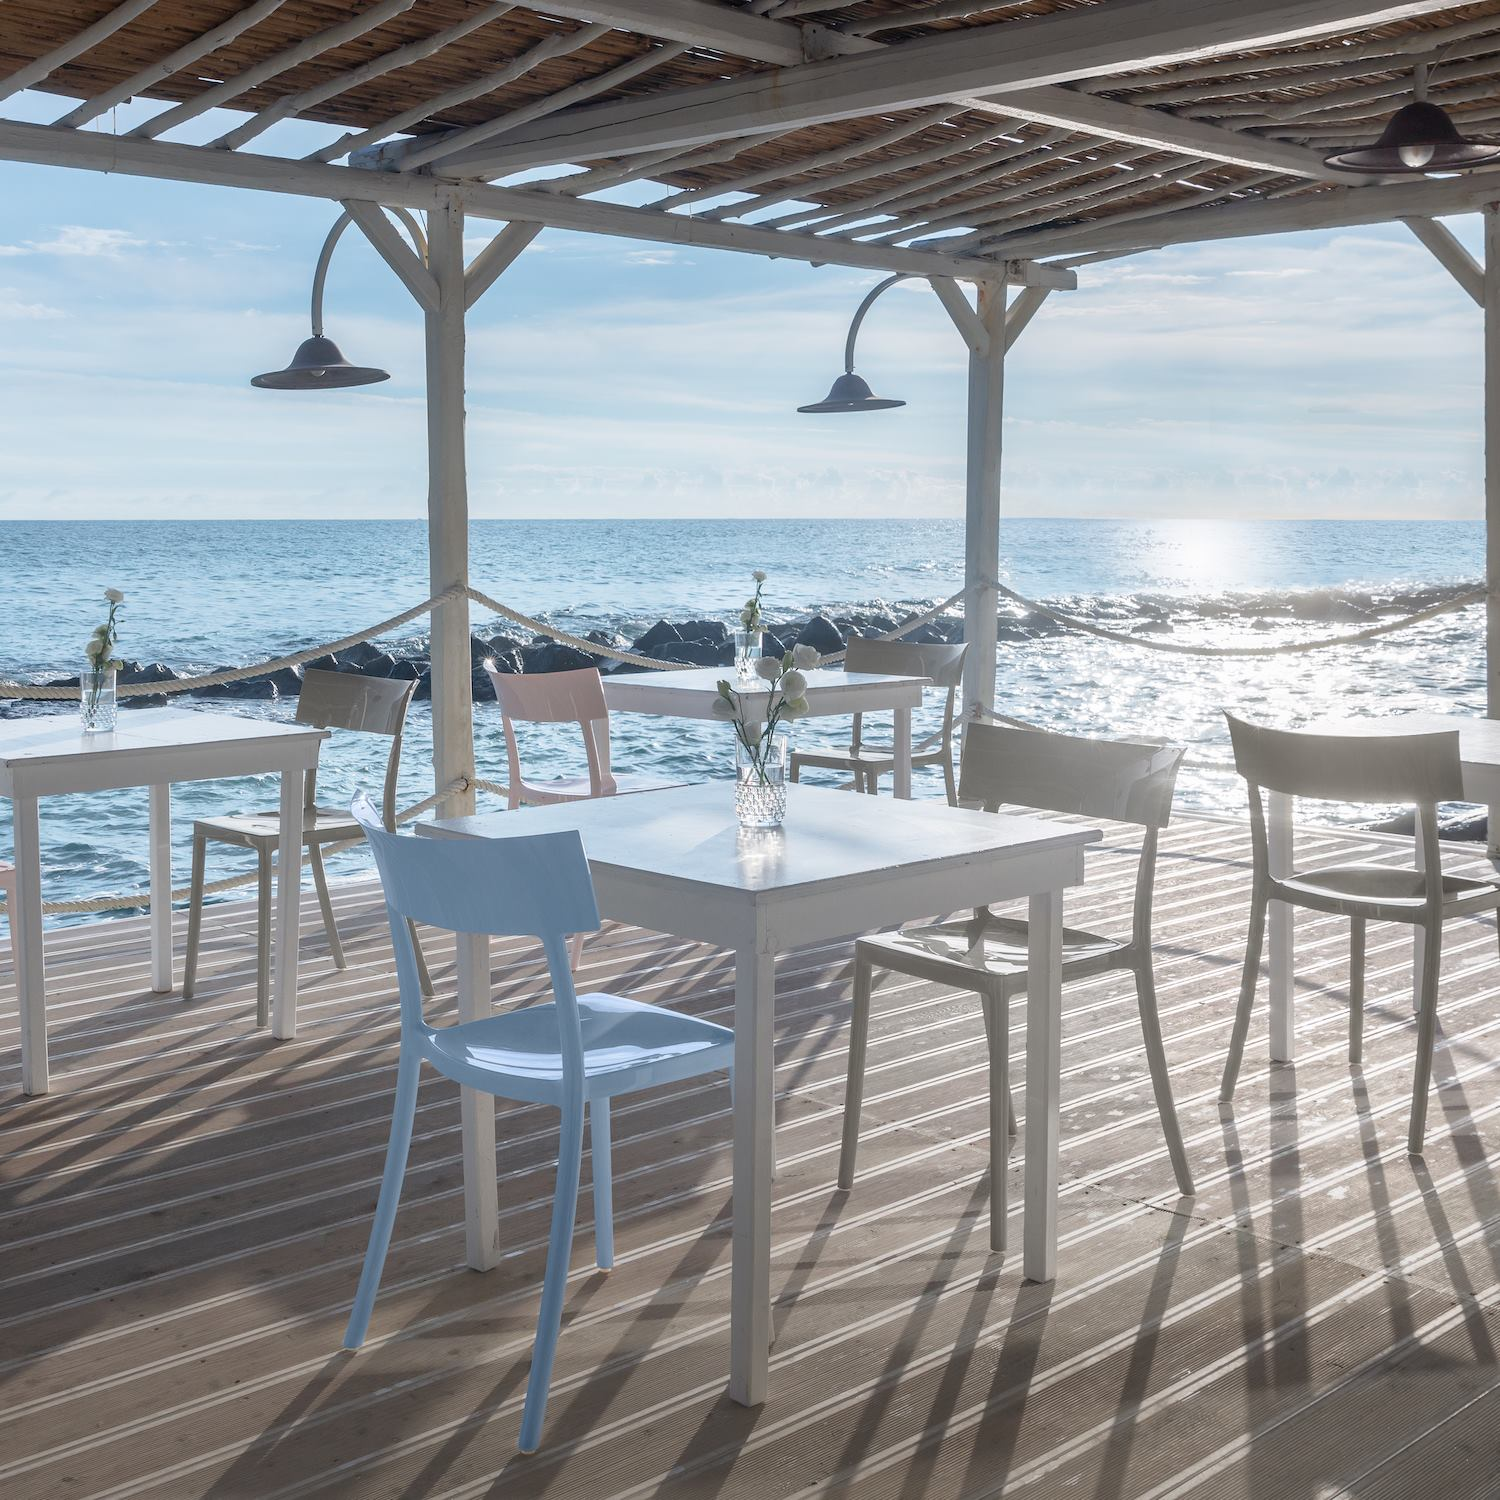 La Peschiera Hotel overlooking the Adriatic Sea and surrounded by a former fishing village in Puglia. Photography © Sara Magni.